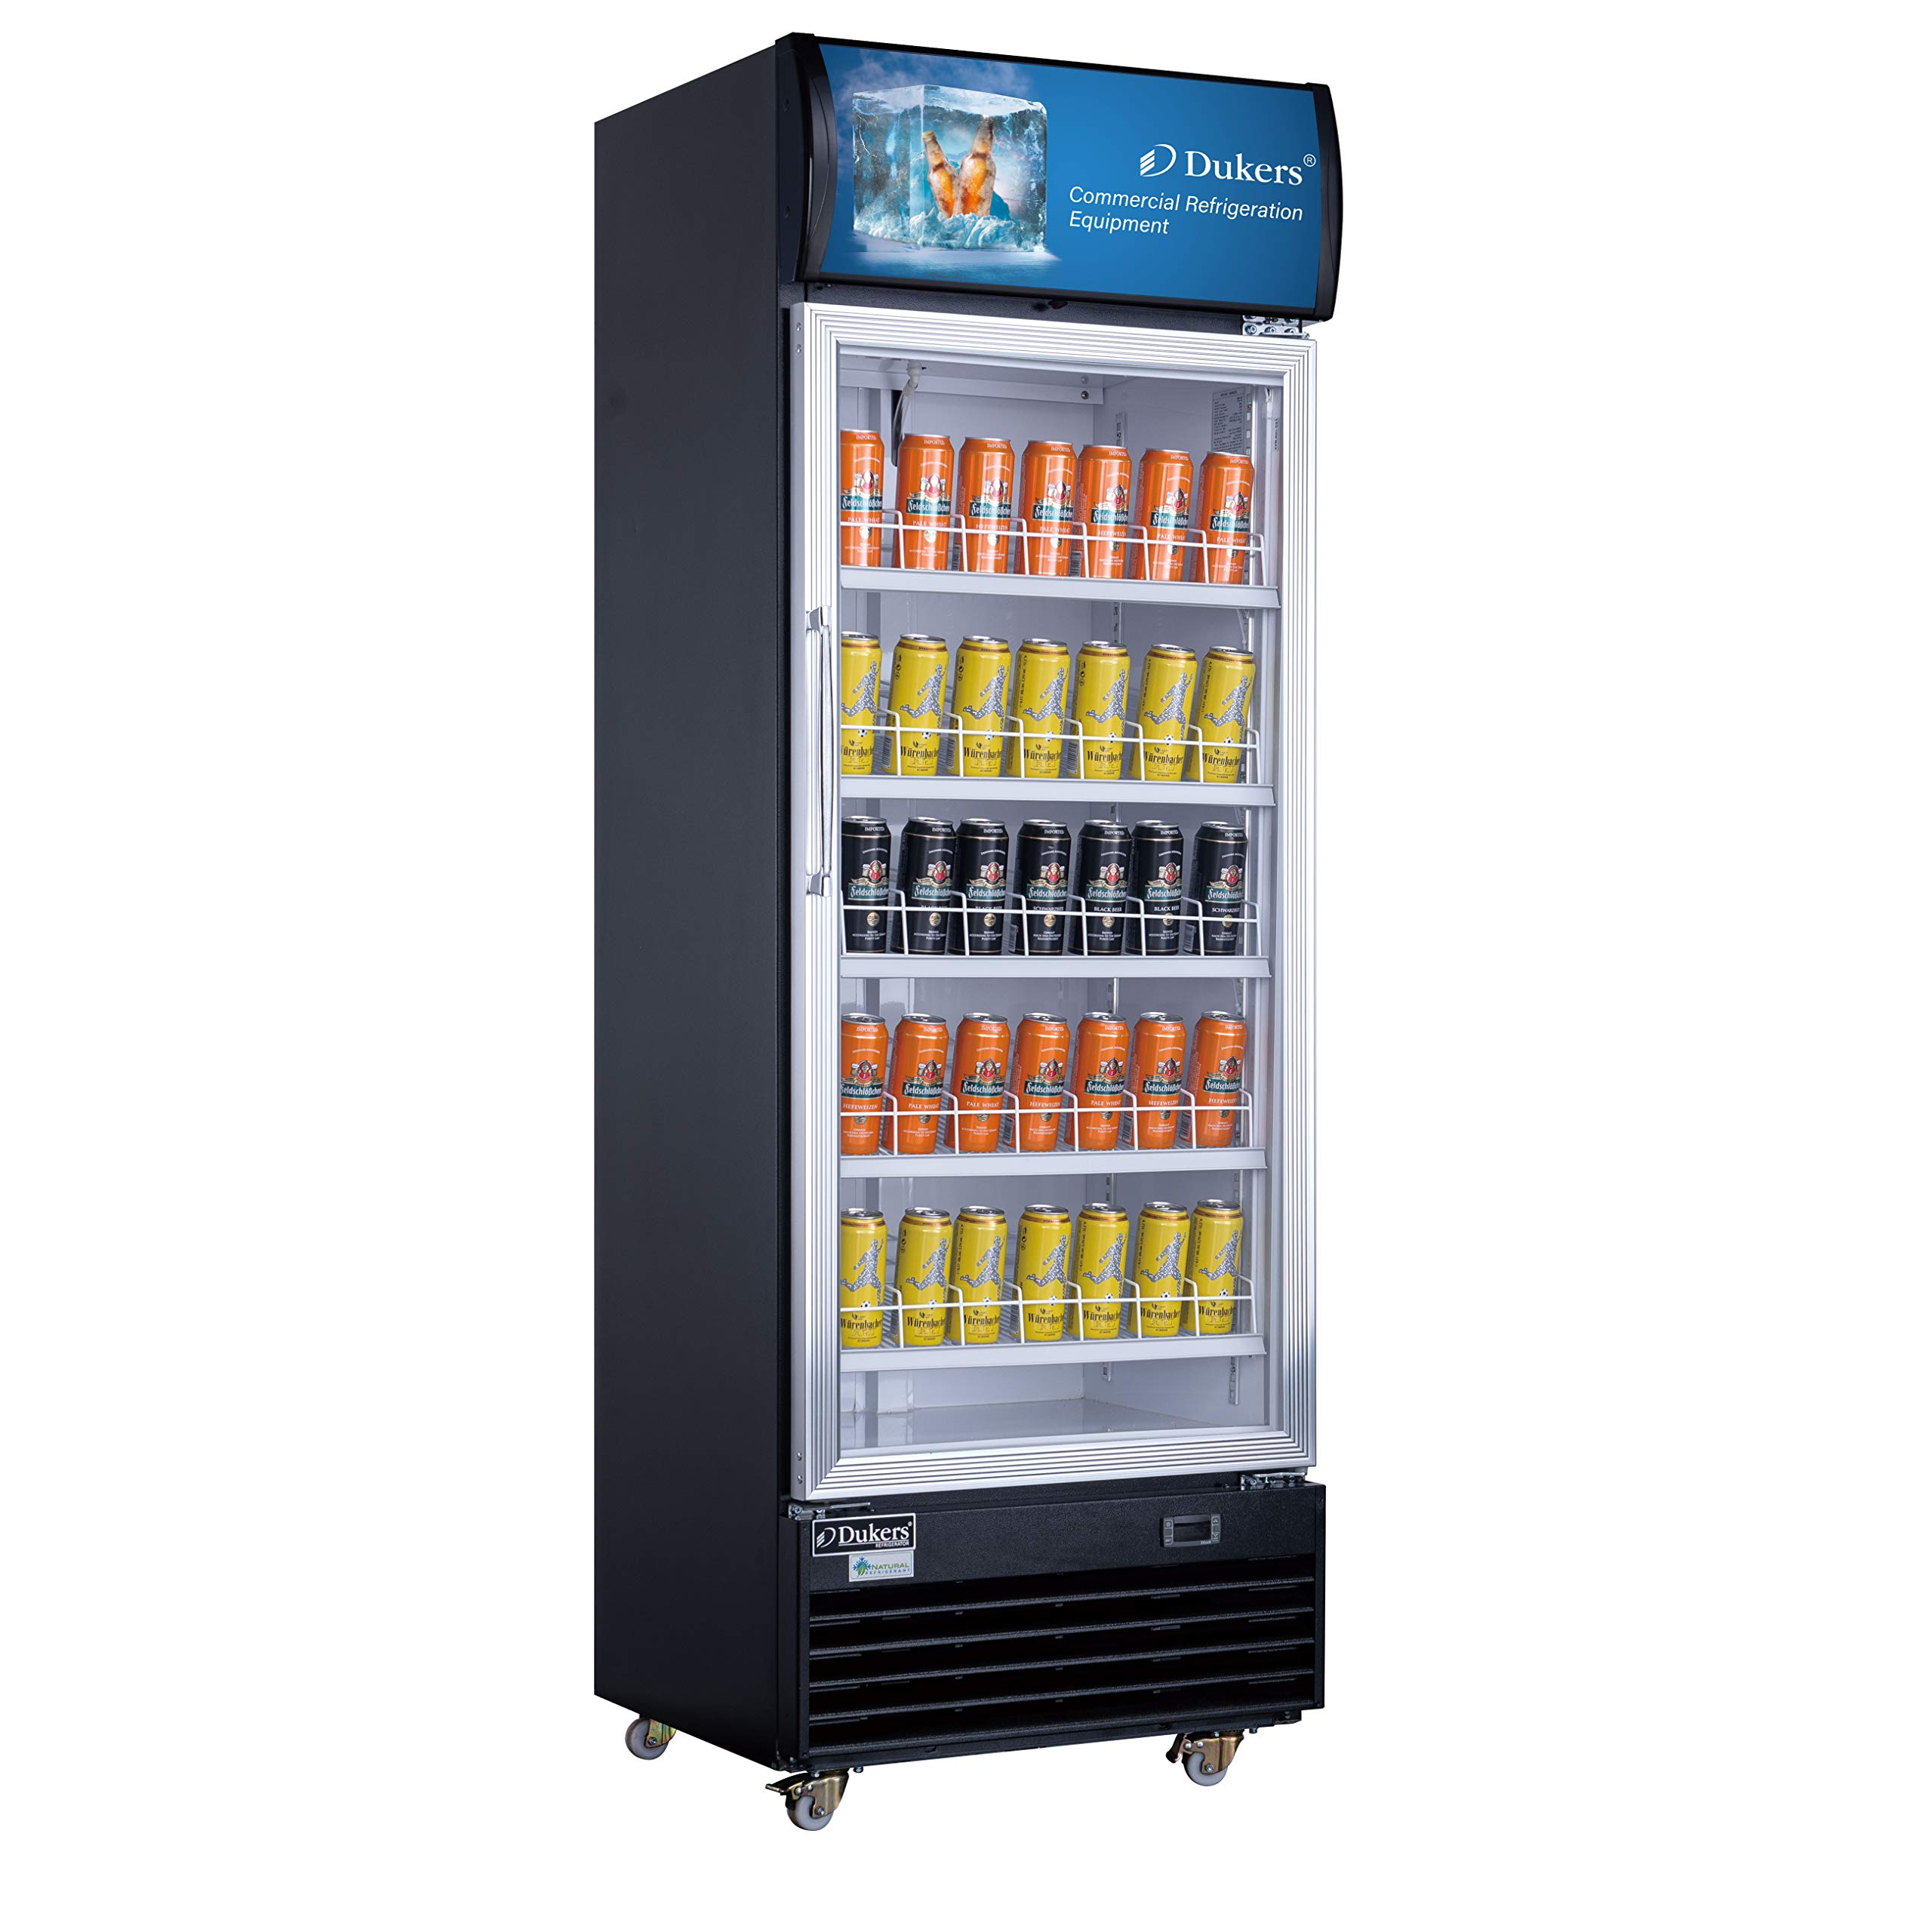 Dukers LG-430 15.1 cu. ft. Commercial Display Cooler Merchandiser Refrigerator by Dukers Appliance USA